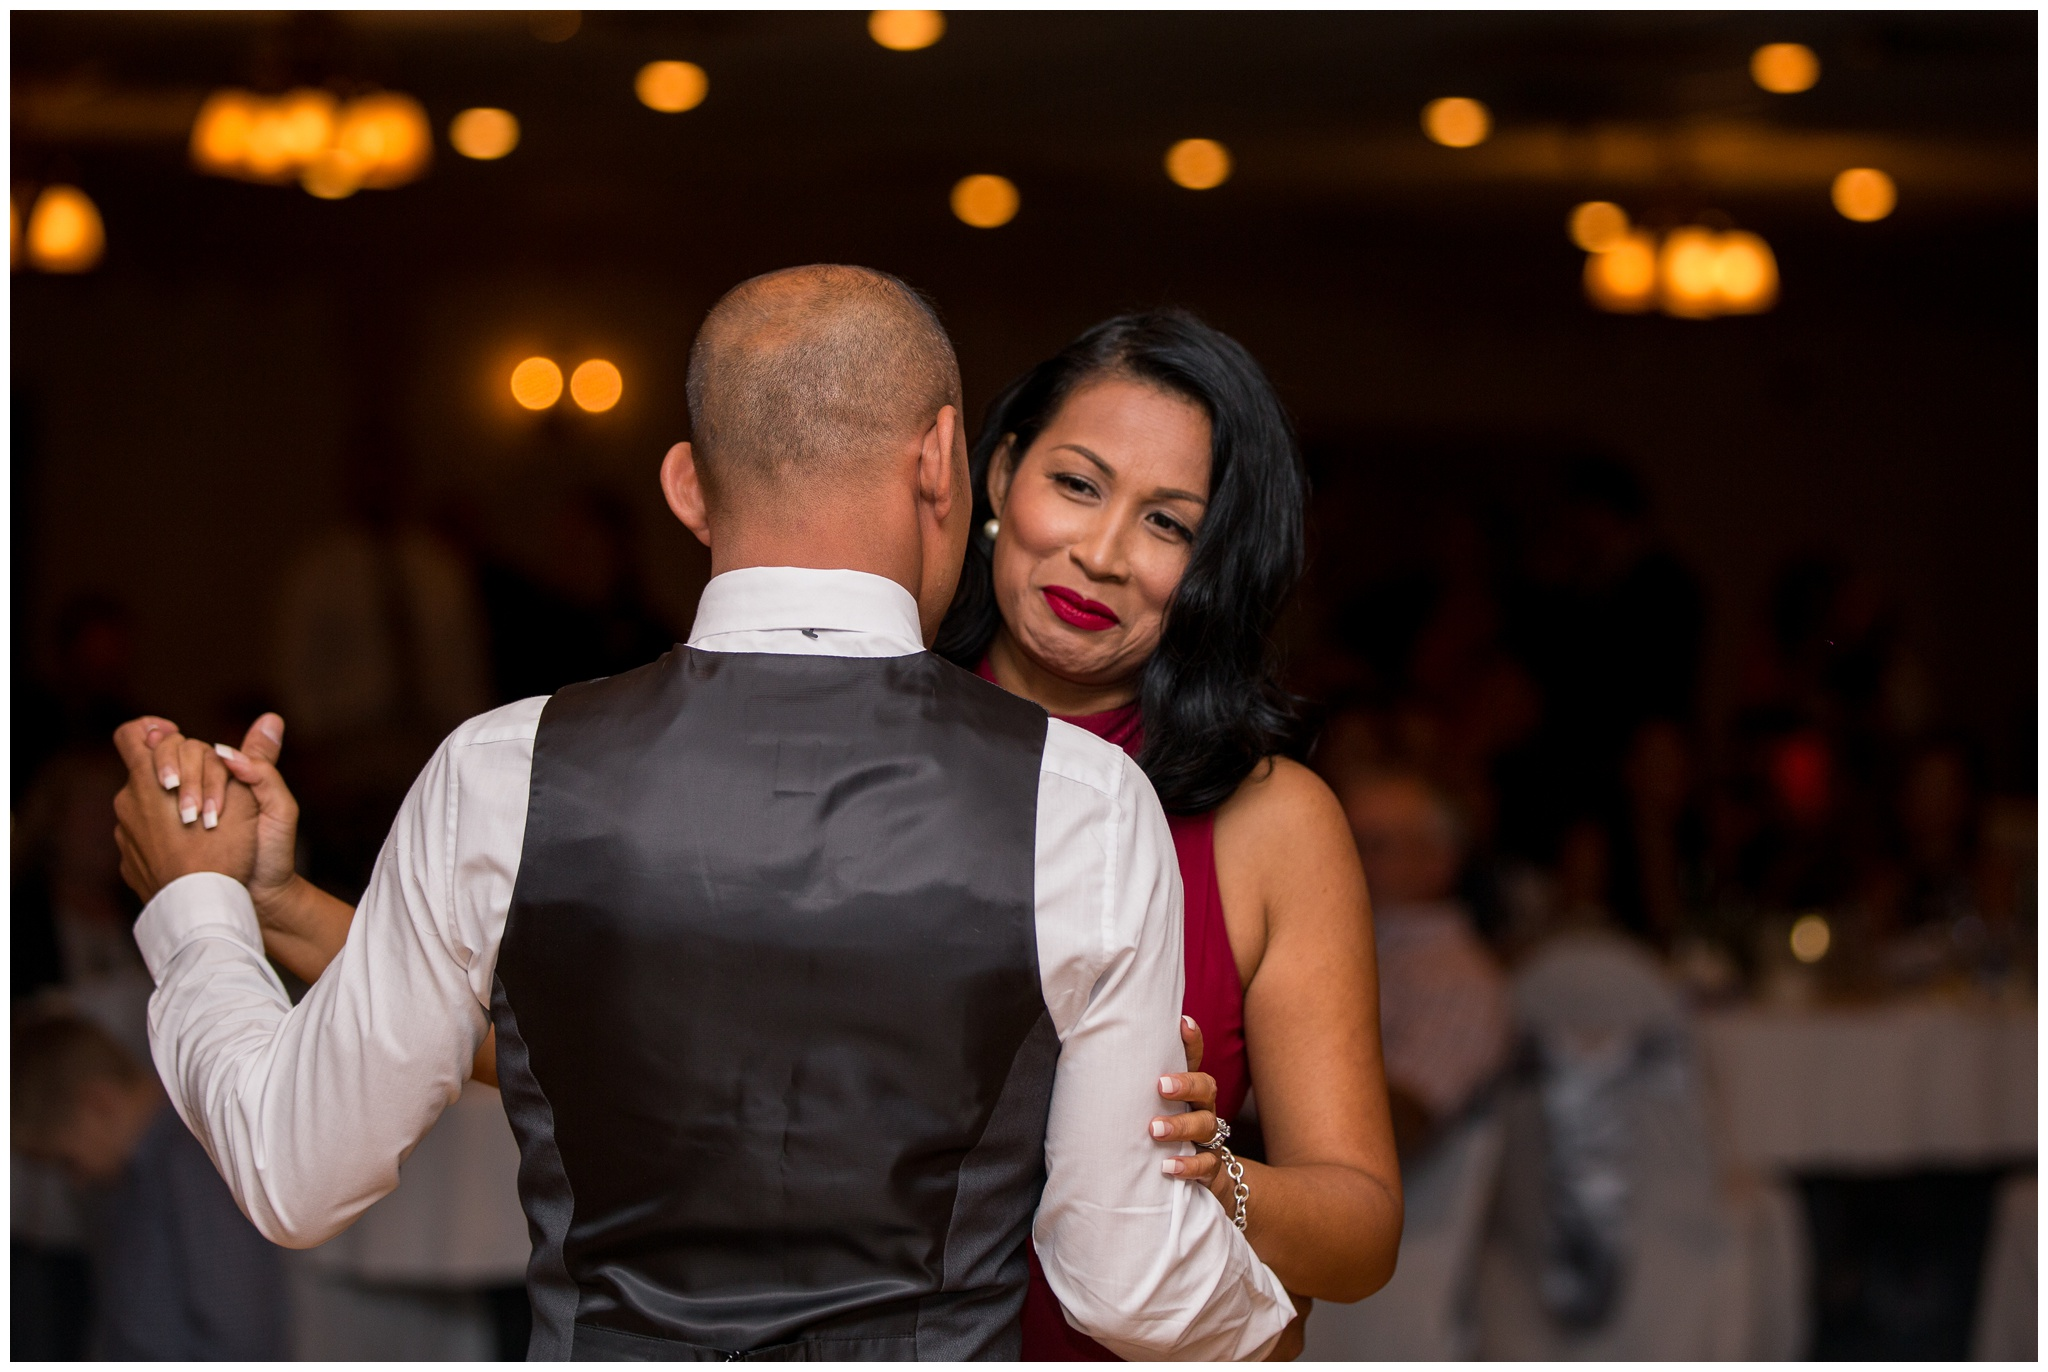 groom dances with sister during wedding reception at Romer's Catering in Greenville Ohio